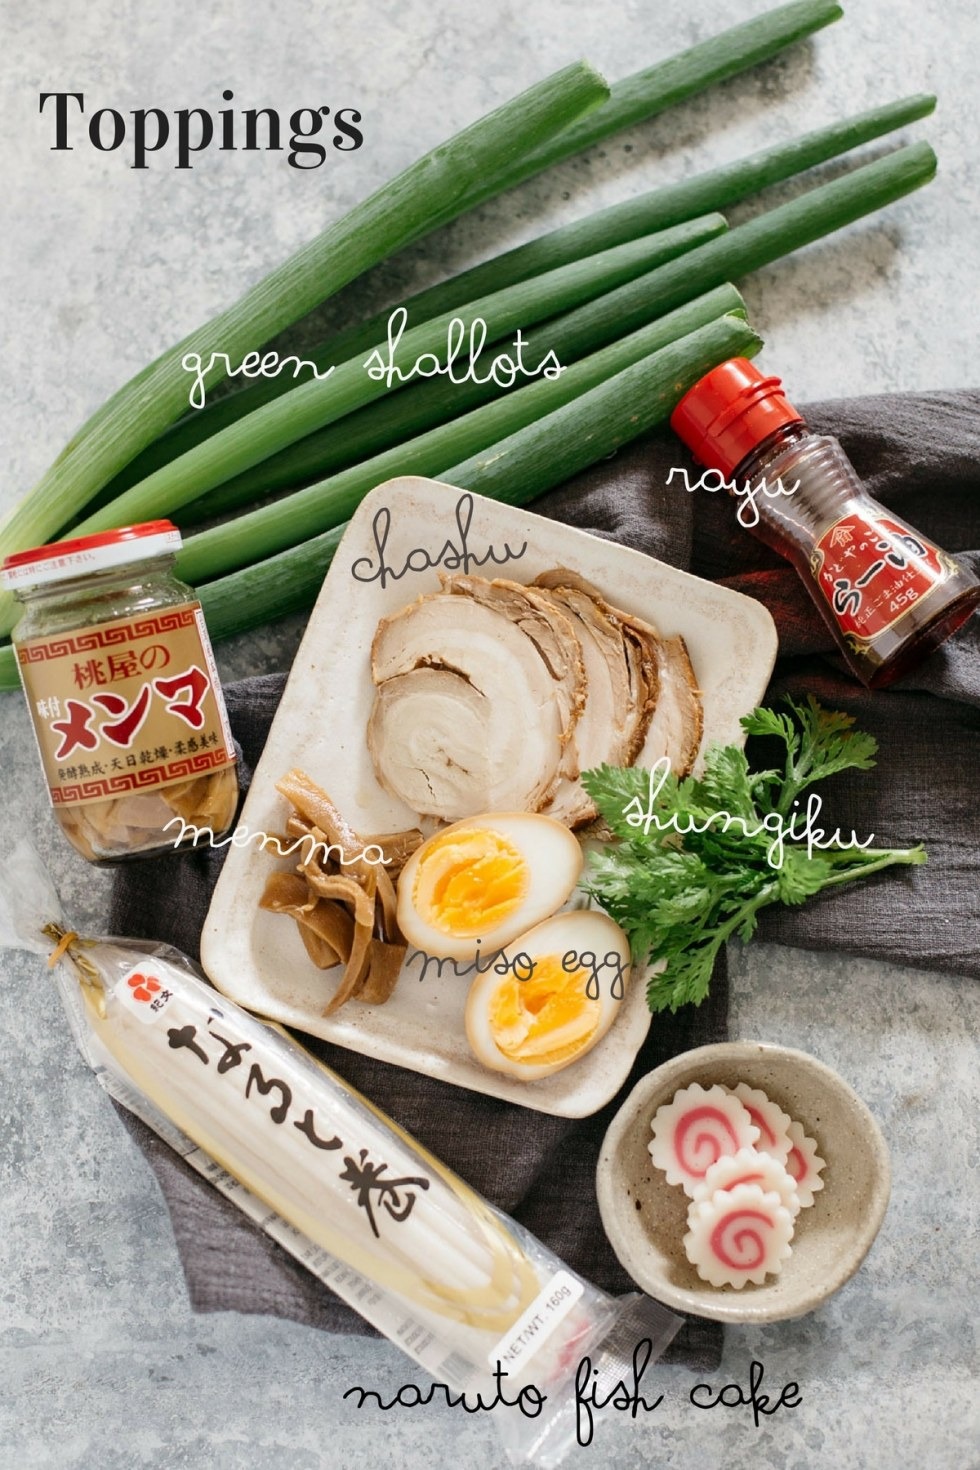 various shio ramen toppings such as chashu and miso eggs